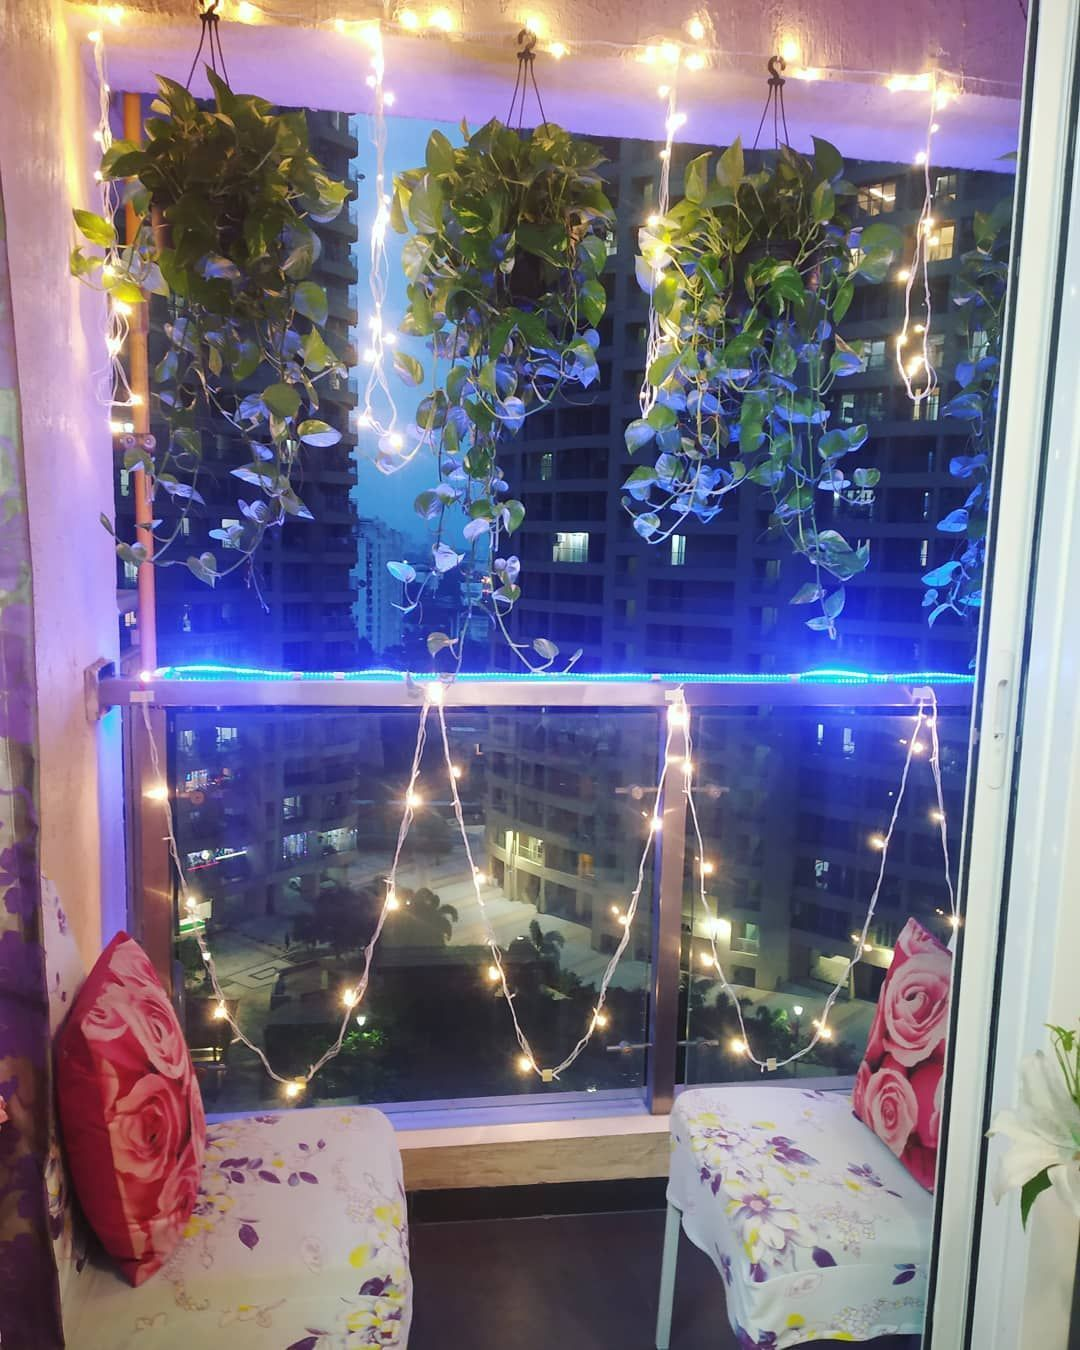 #balcony #balconyview #decor #decoration #diwali #festive #festival #interior #interiordesign #interiordecorating #interiordesigner #instahome #instagood #interiordecoration #home #homedecor #homesweethome #homes #homedeco #homestyling #homeinspiration #homestyle #homedesign #homedecoration #homeinterior #homeinspo #homeideas #urbanclaphomes #diwalidecorationsathome #balcony #balconyview #decor #decoration #diwali #festive #festival #interior #interiordesign #interiordecorating #interiordesigner #diwalidecorationsathome